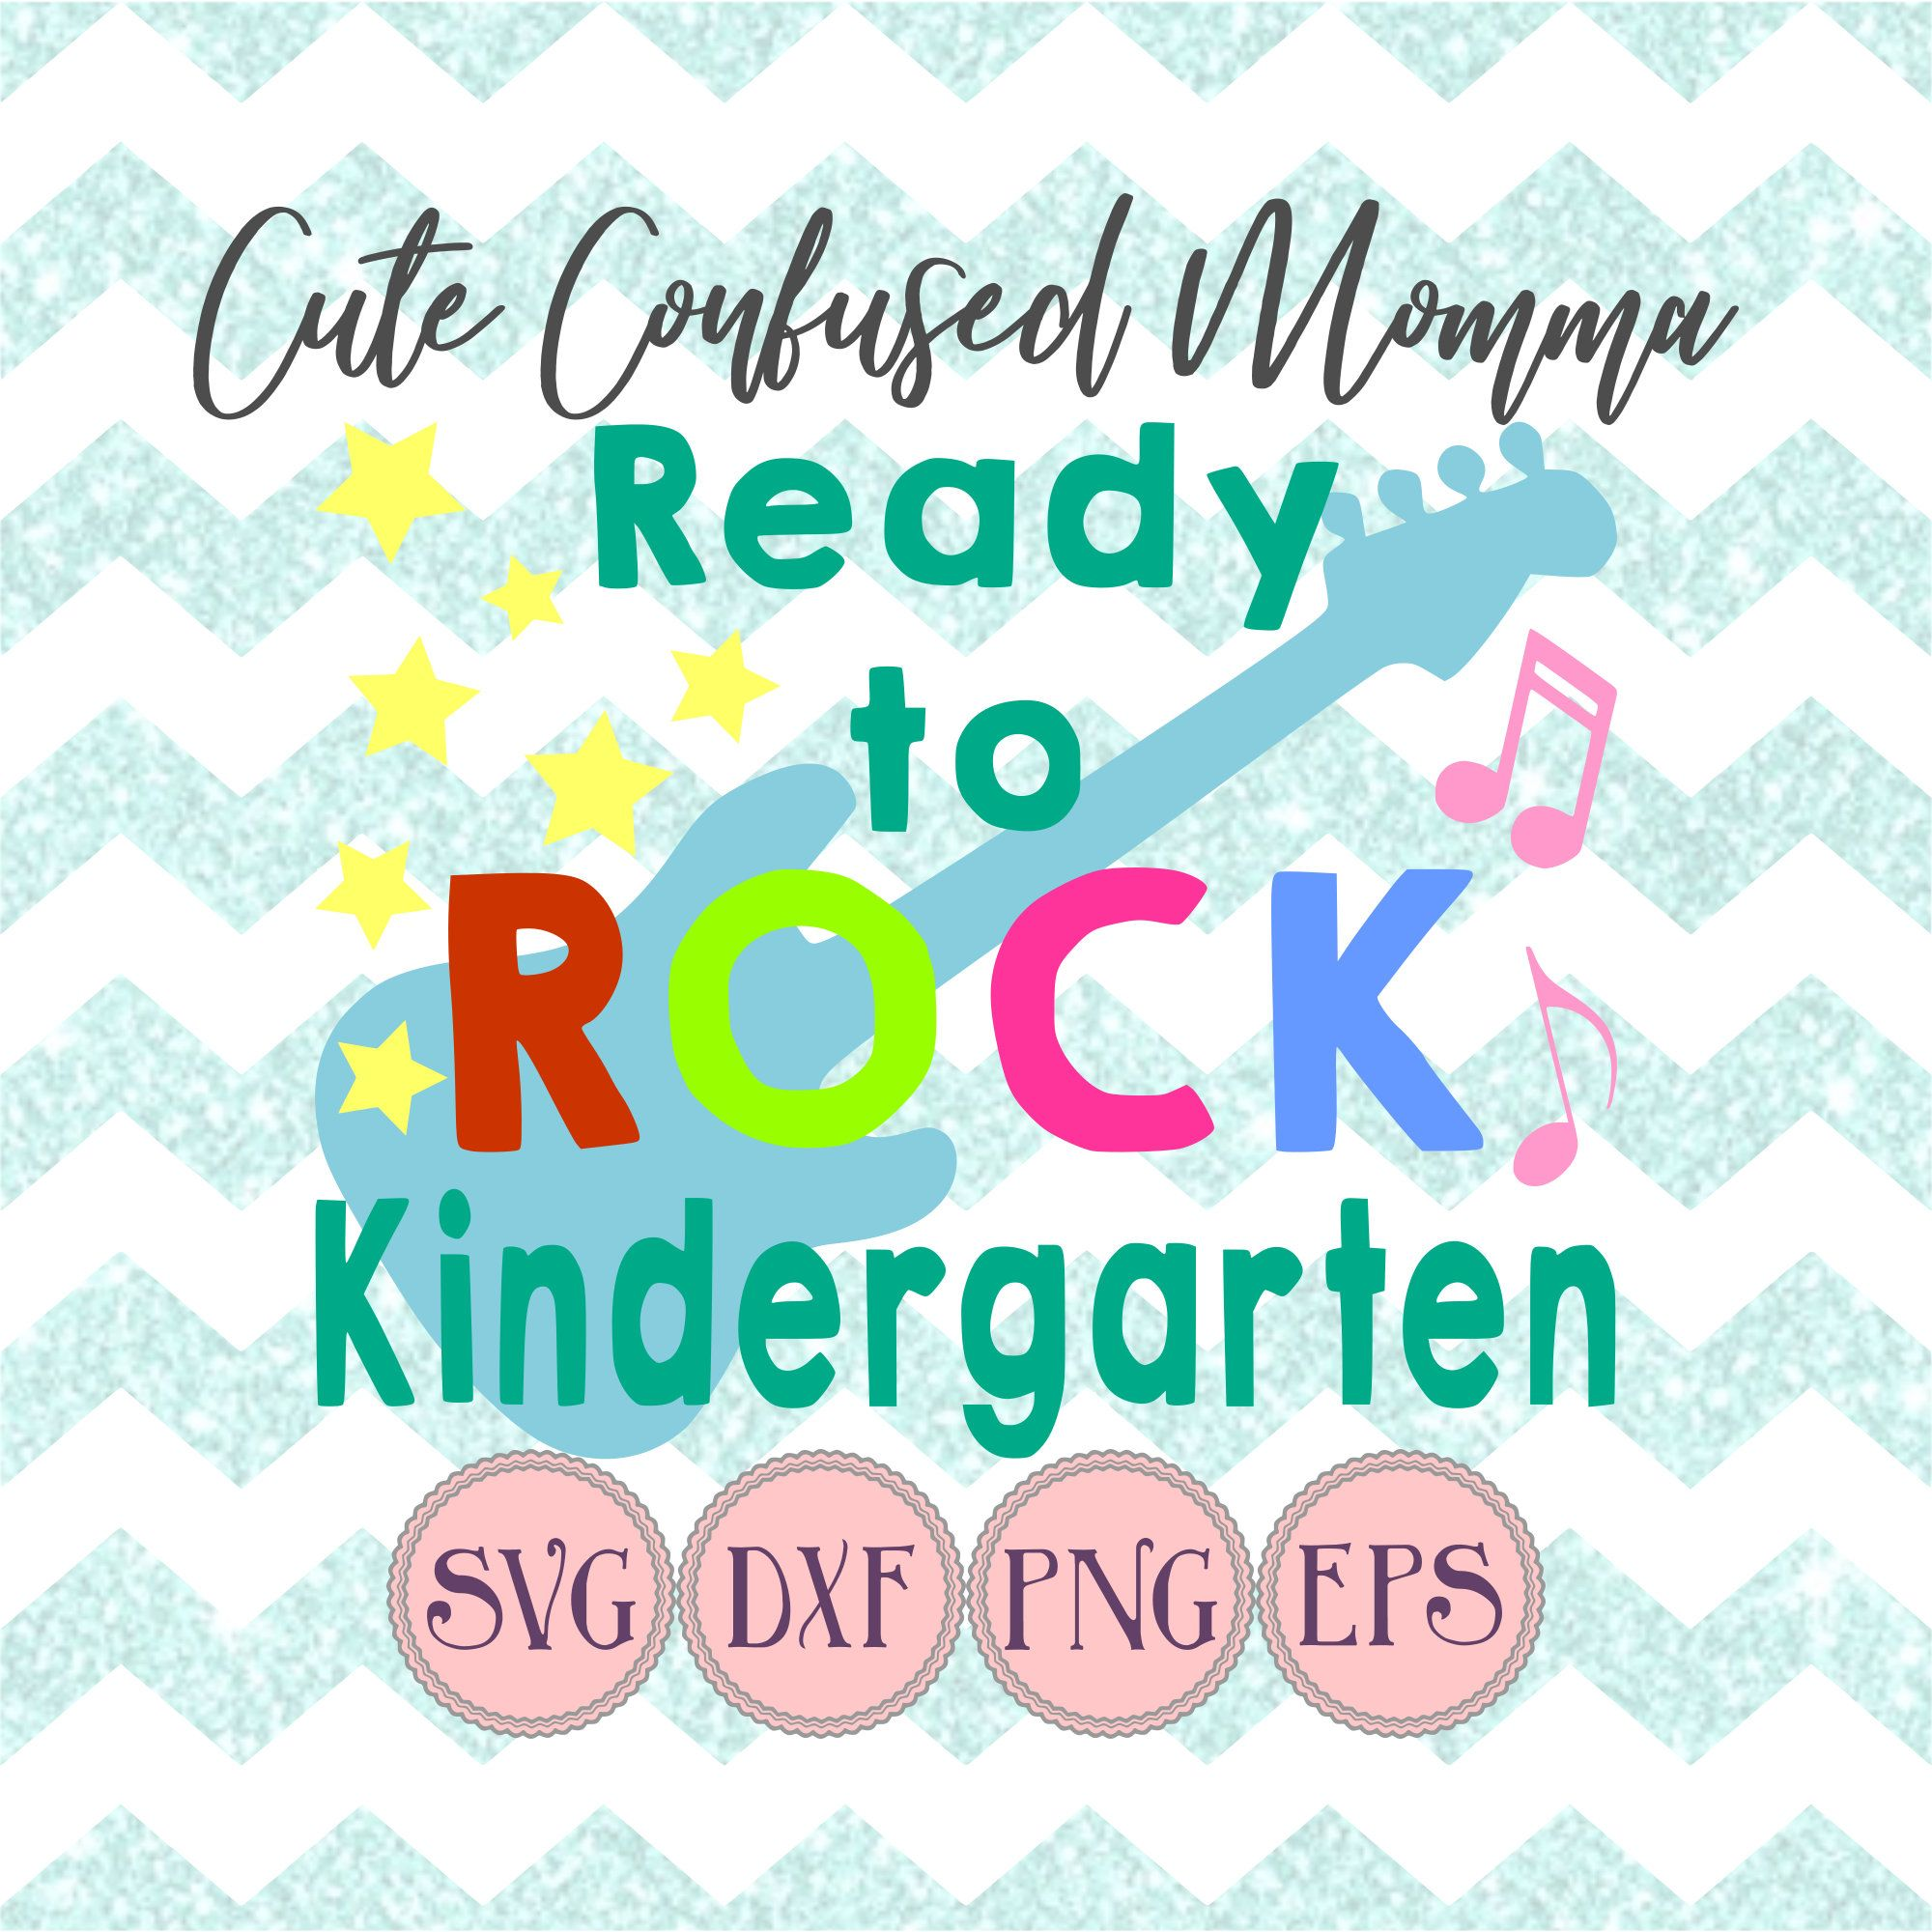 First Day Of School Kindergarten Svg Files For Cricut, Back To